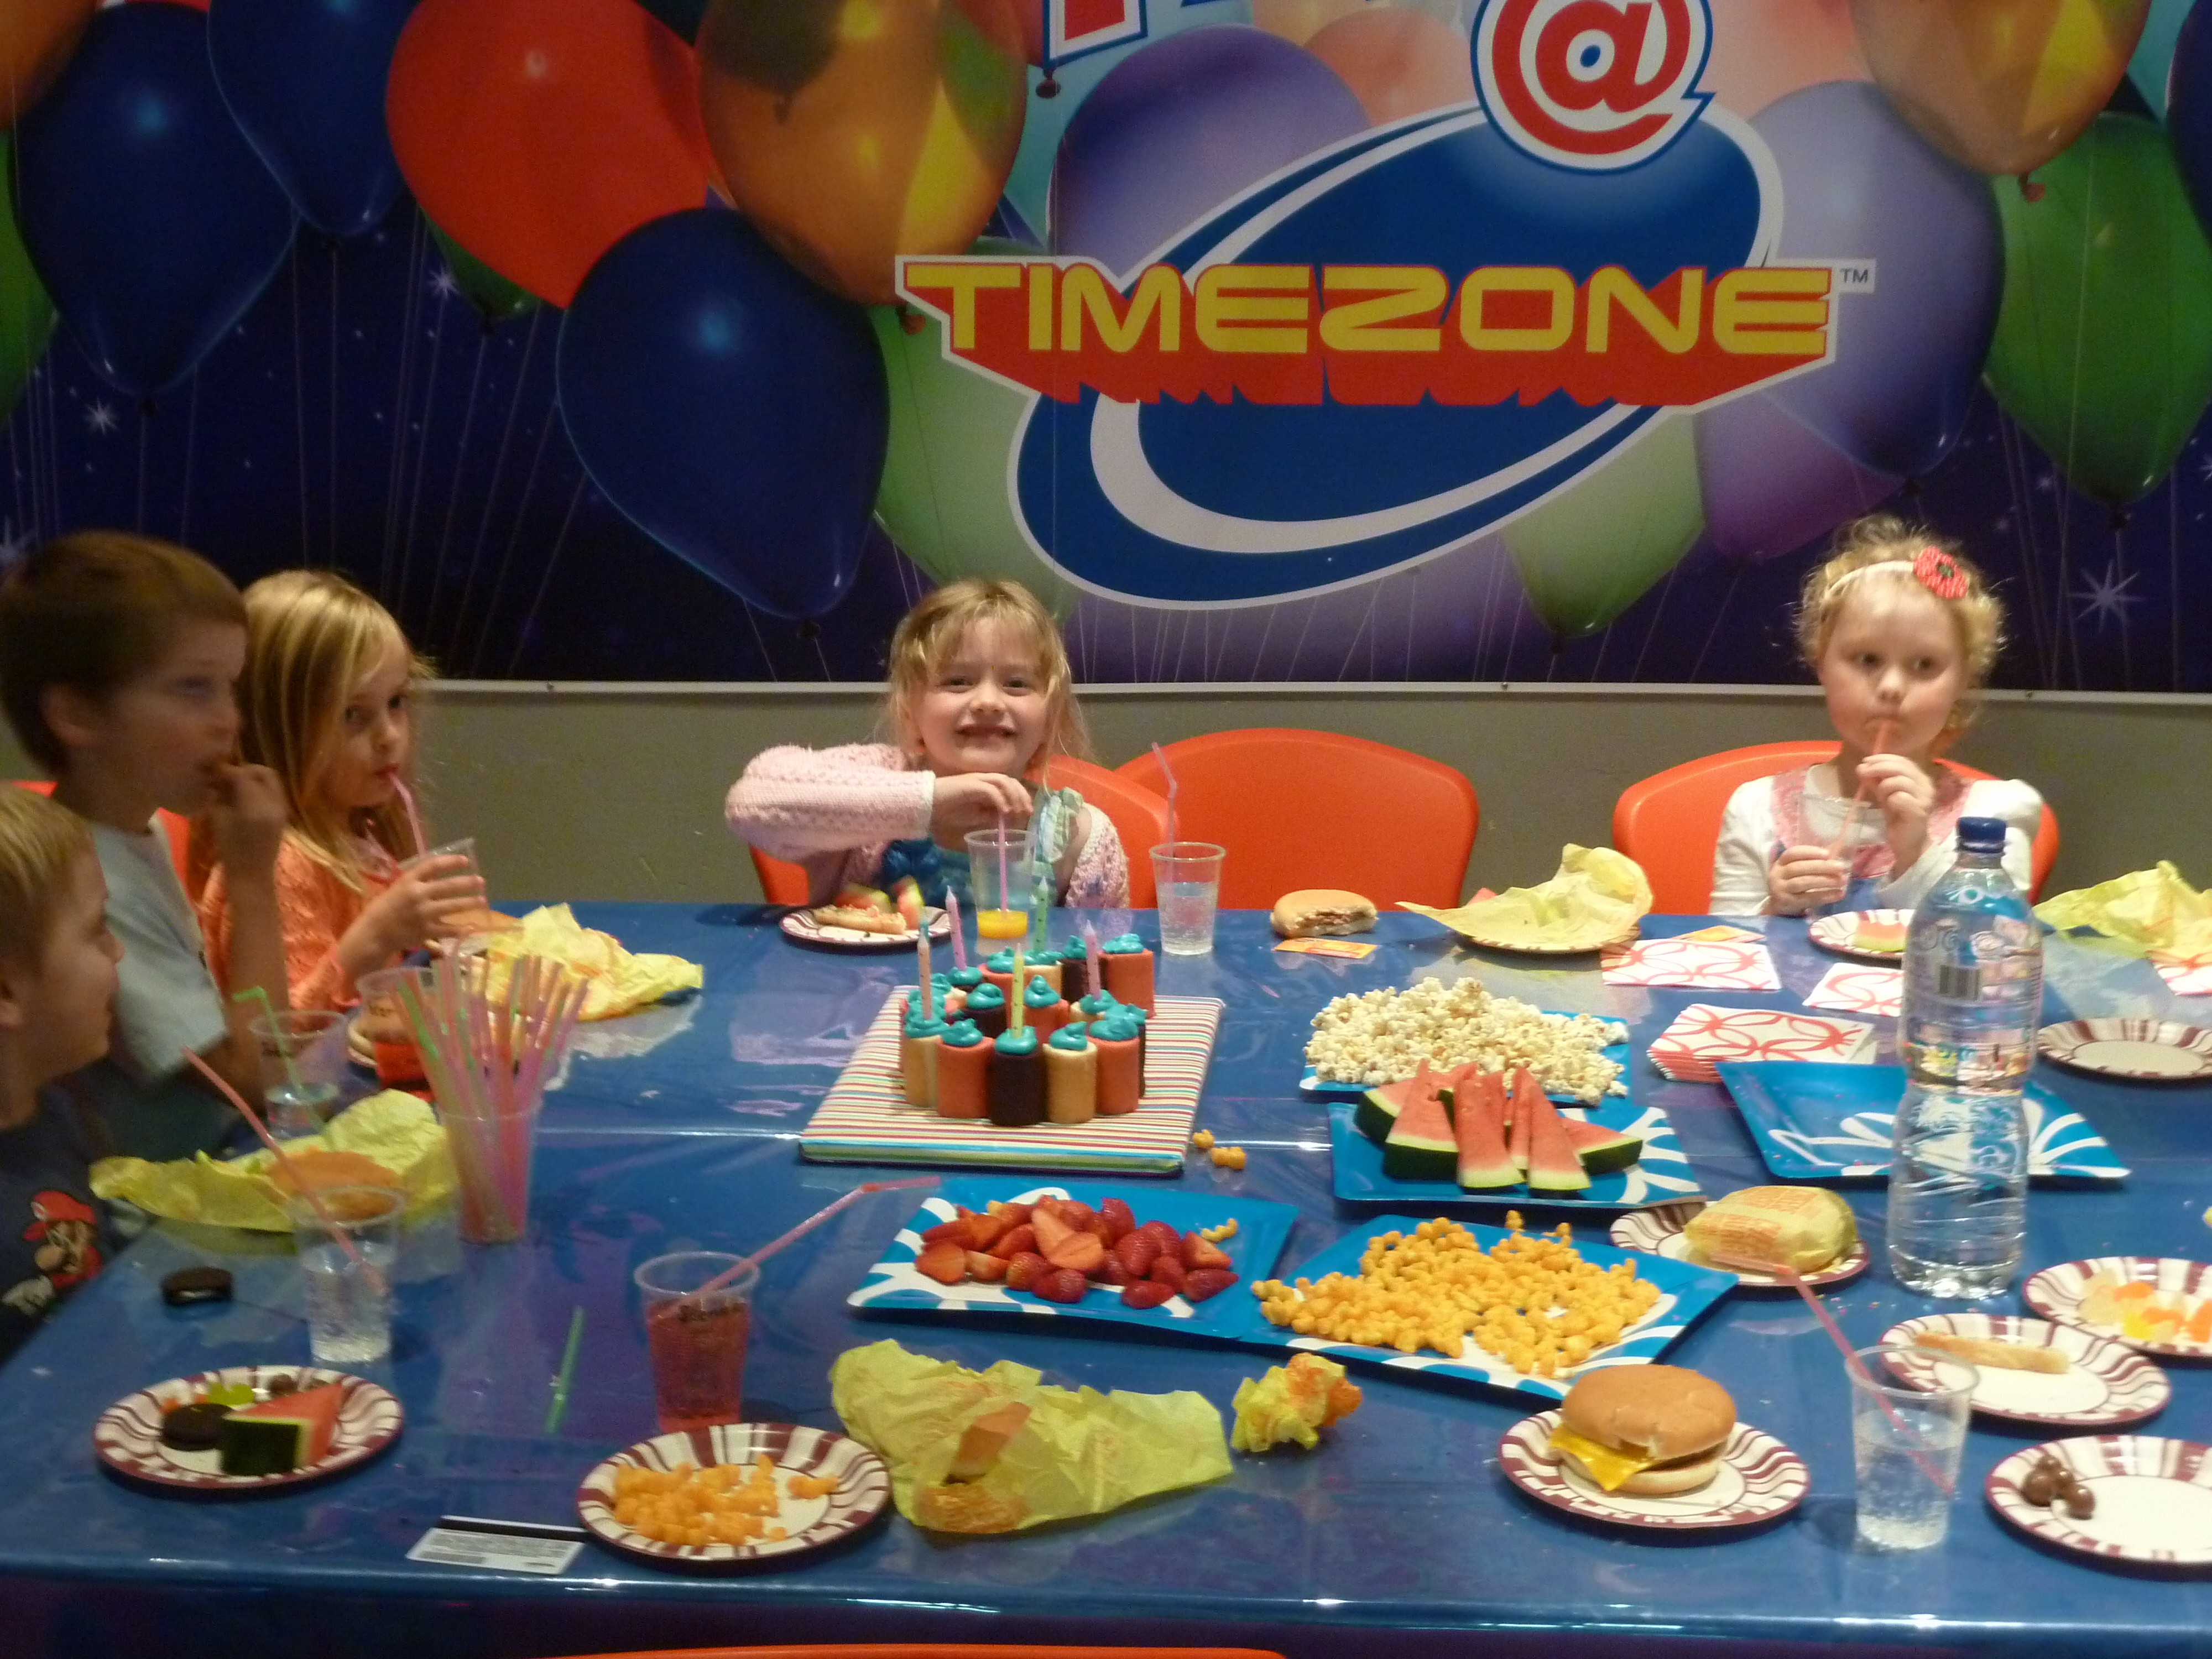 Kids Party At Timezone By Shannon Meyerkort - Children's birthday parties joondalup